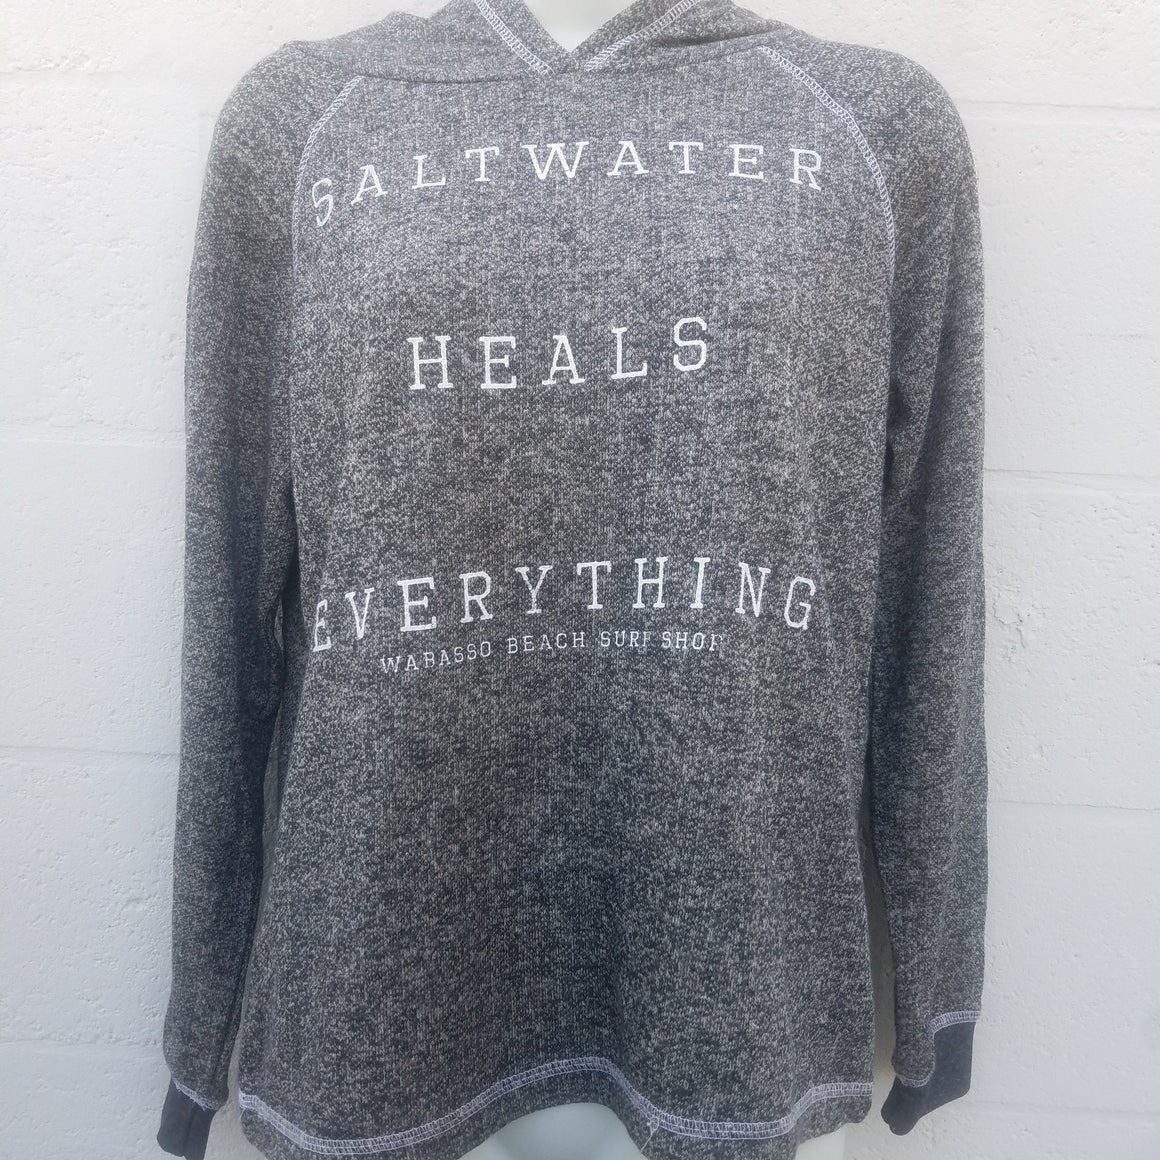 Women Salt Water Heals Everything Wabasso Beach Surf Shop Sweatshirt Hoodie Saltwater